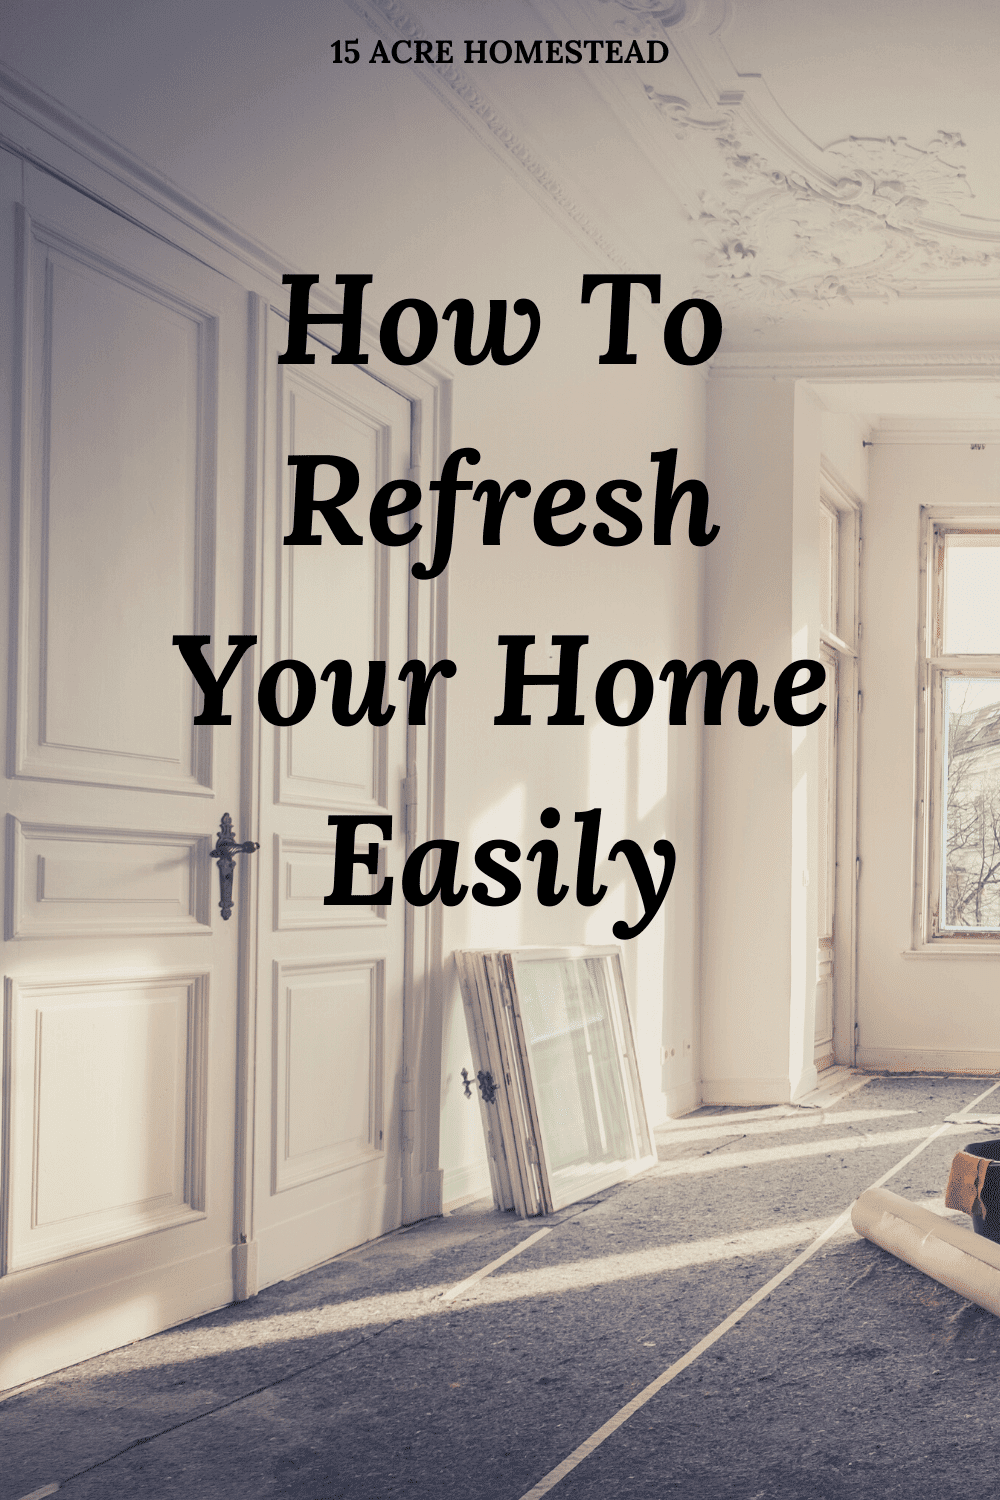 Looking to refresh your house? Then try these simple tips to do a complete refresh easily!